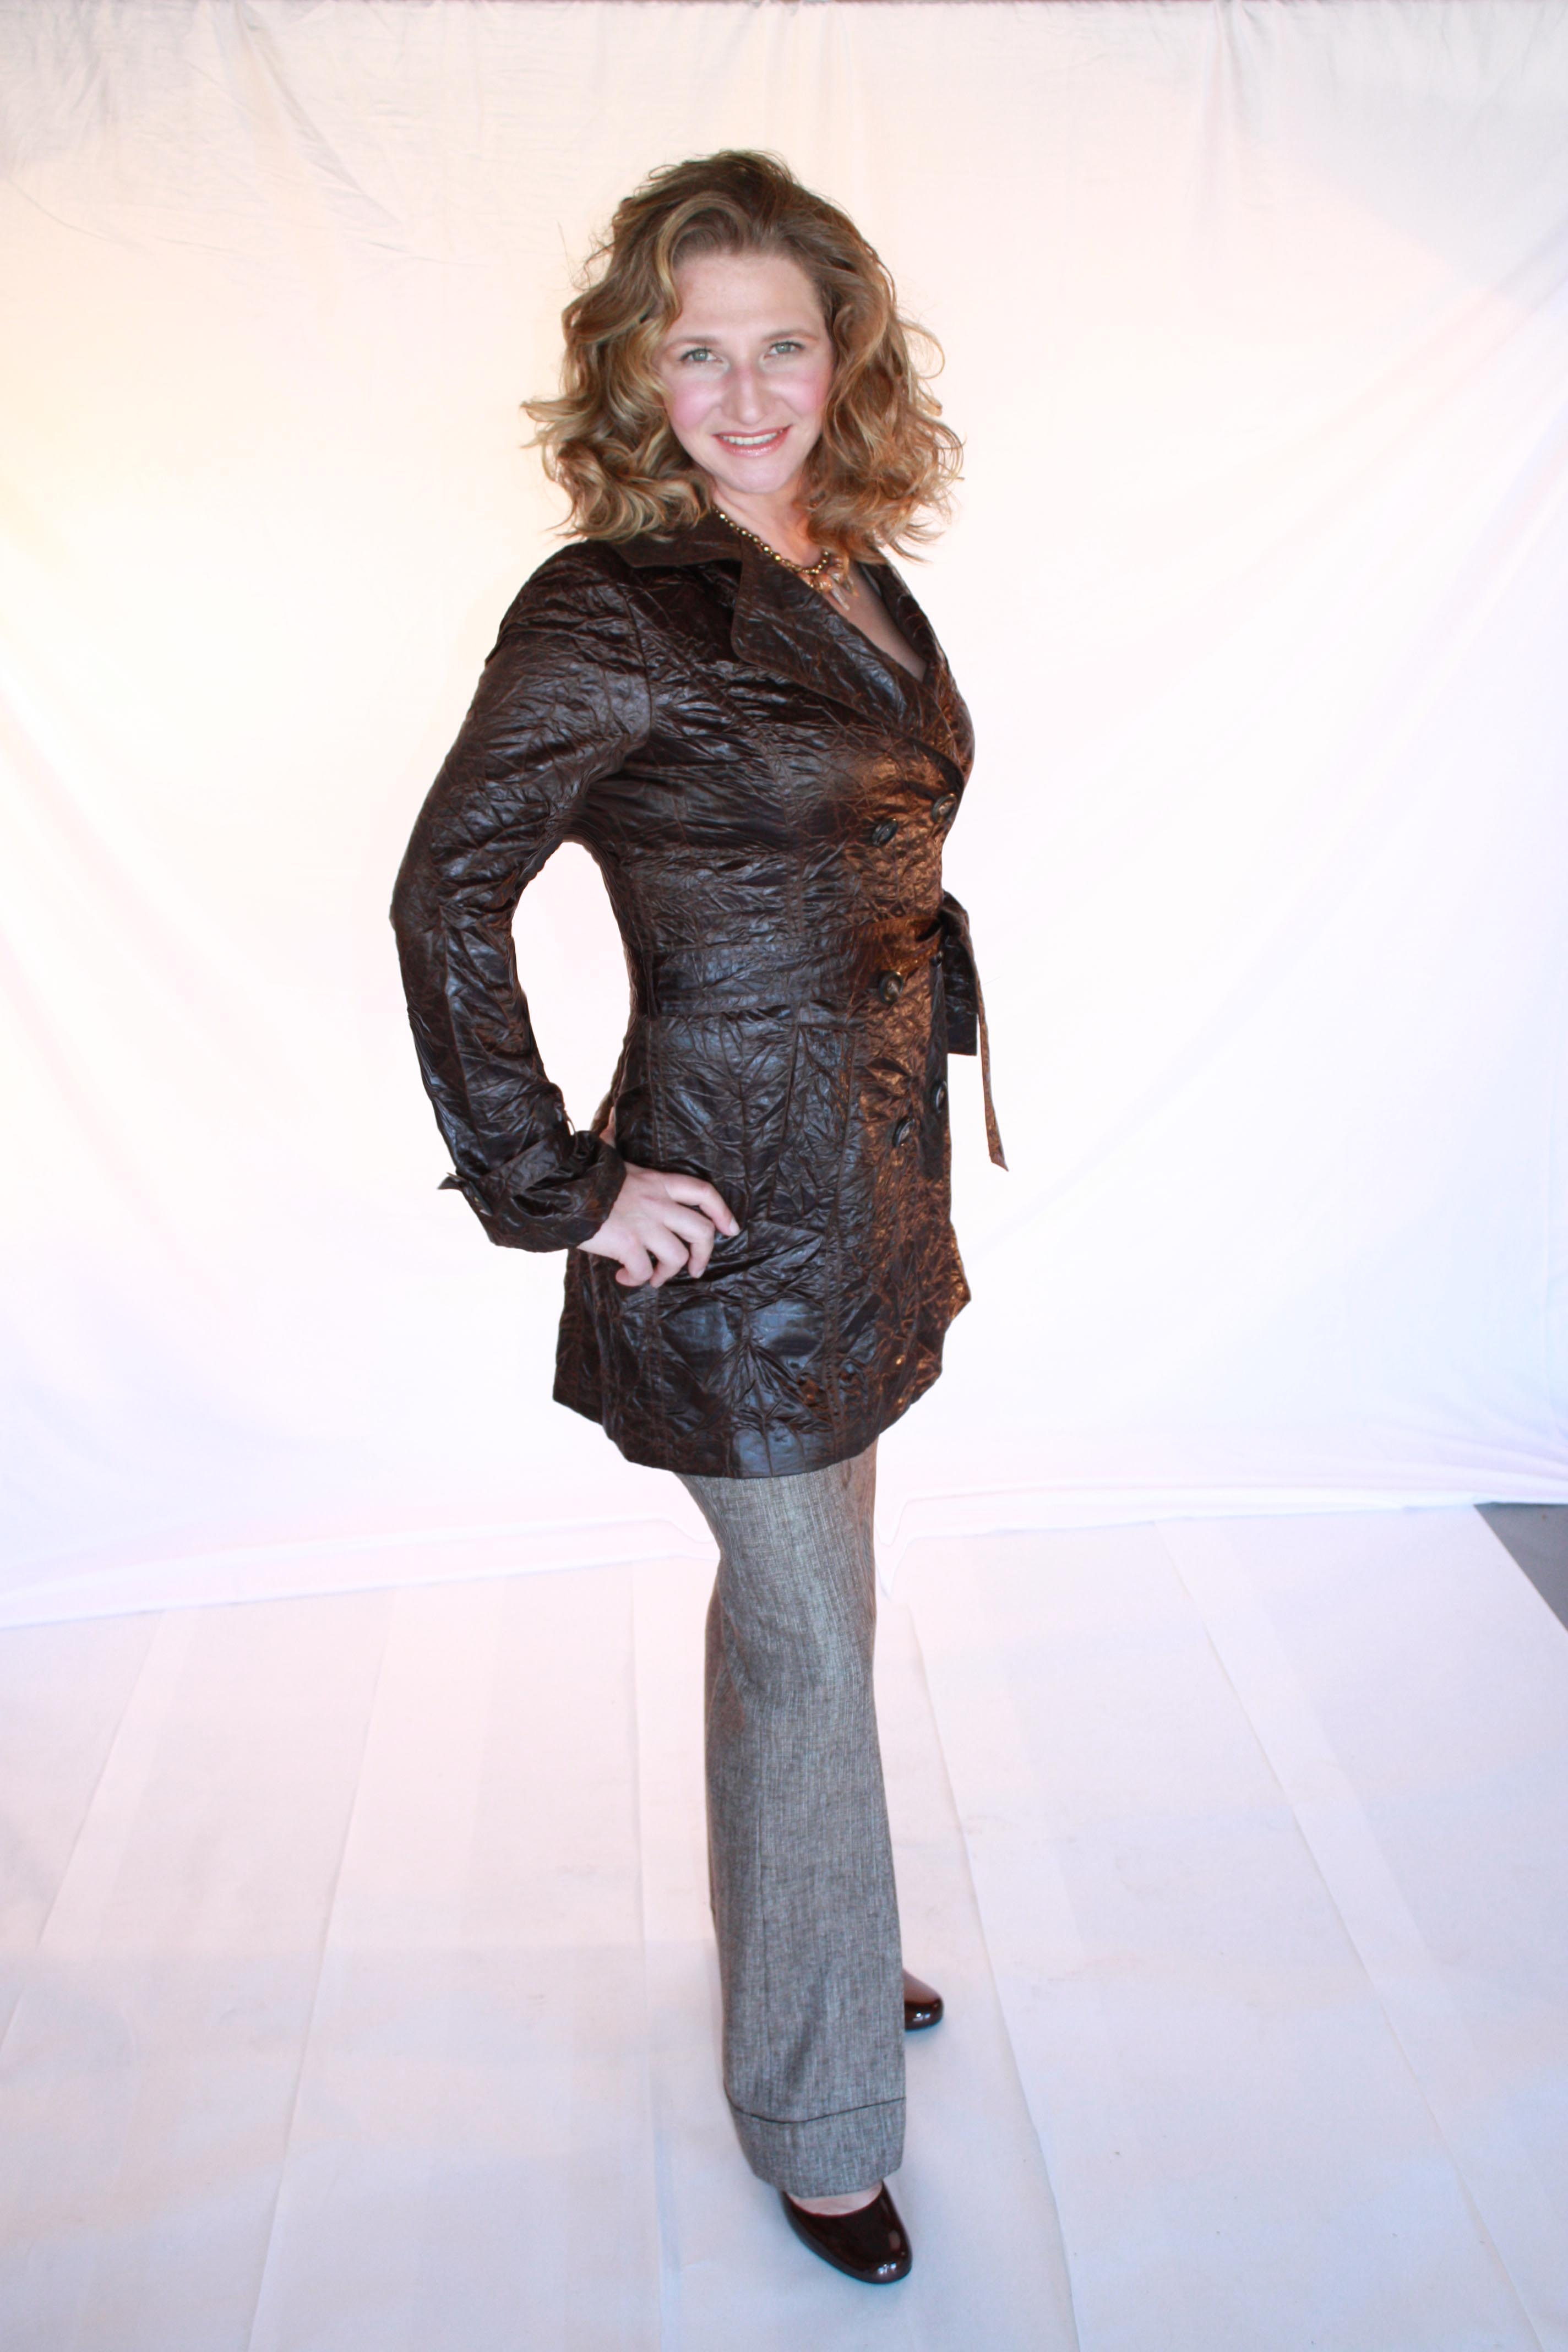 Bianca Stark-Falcone, certified image consultant